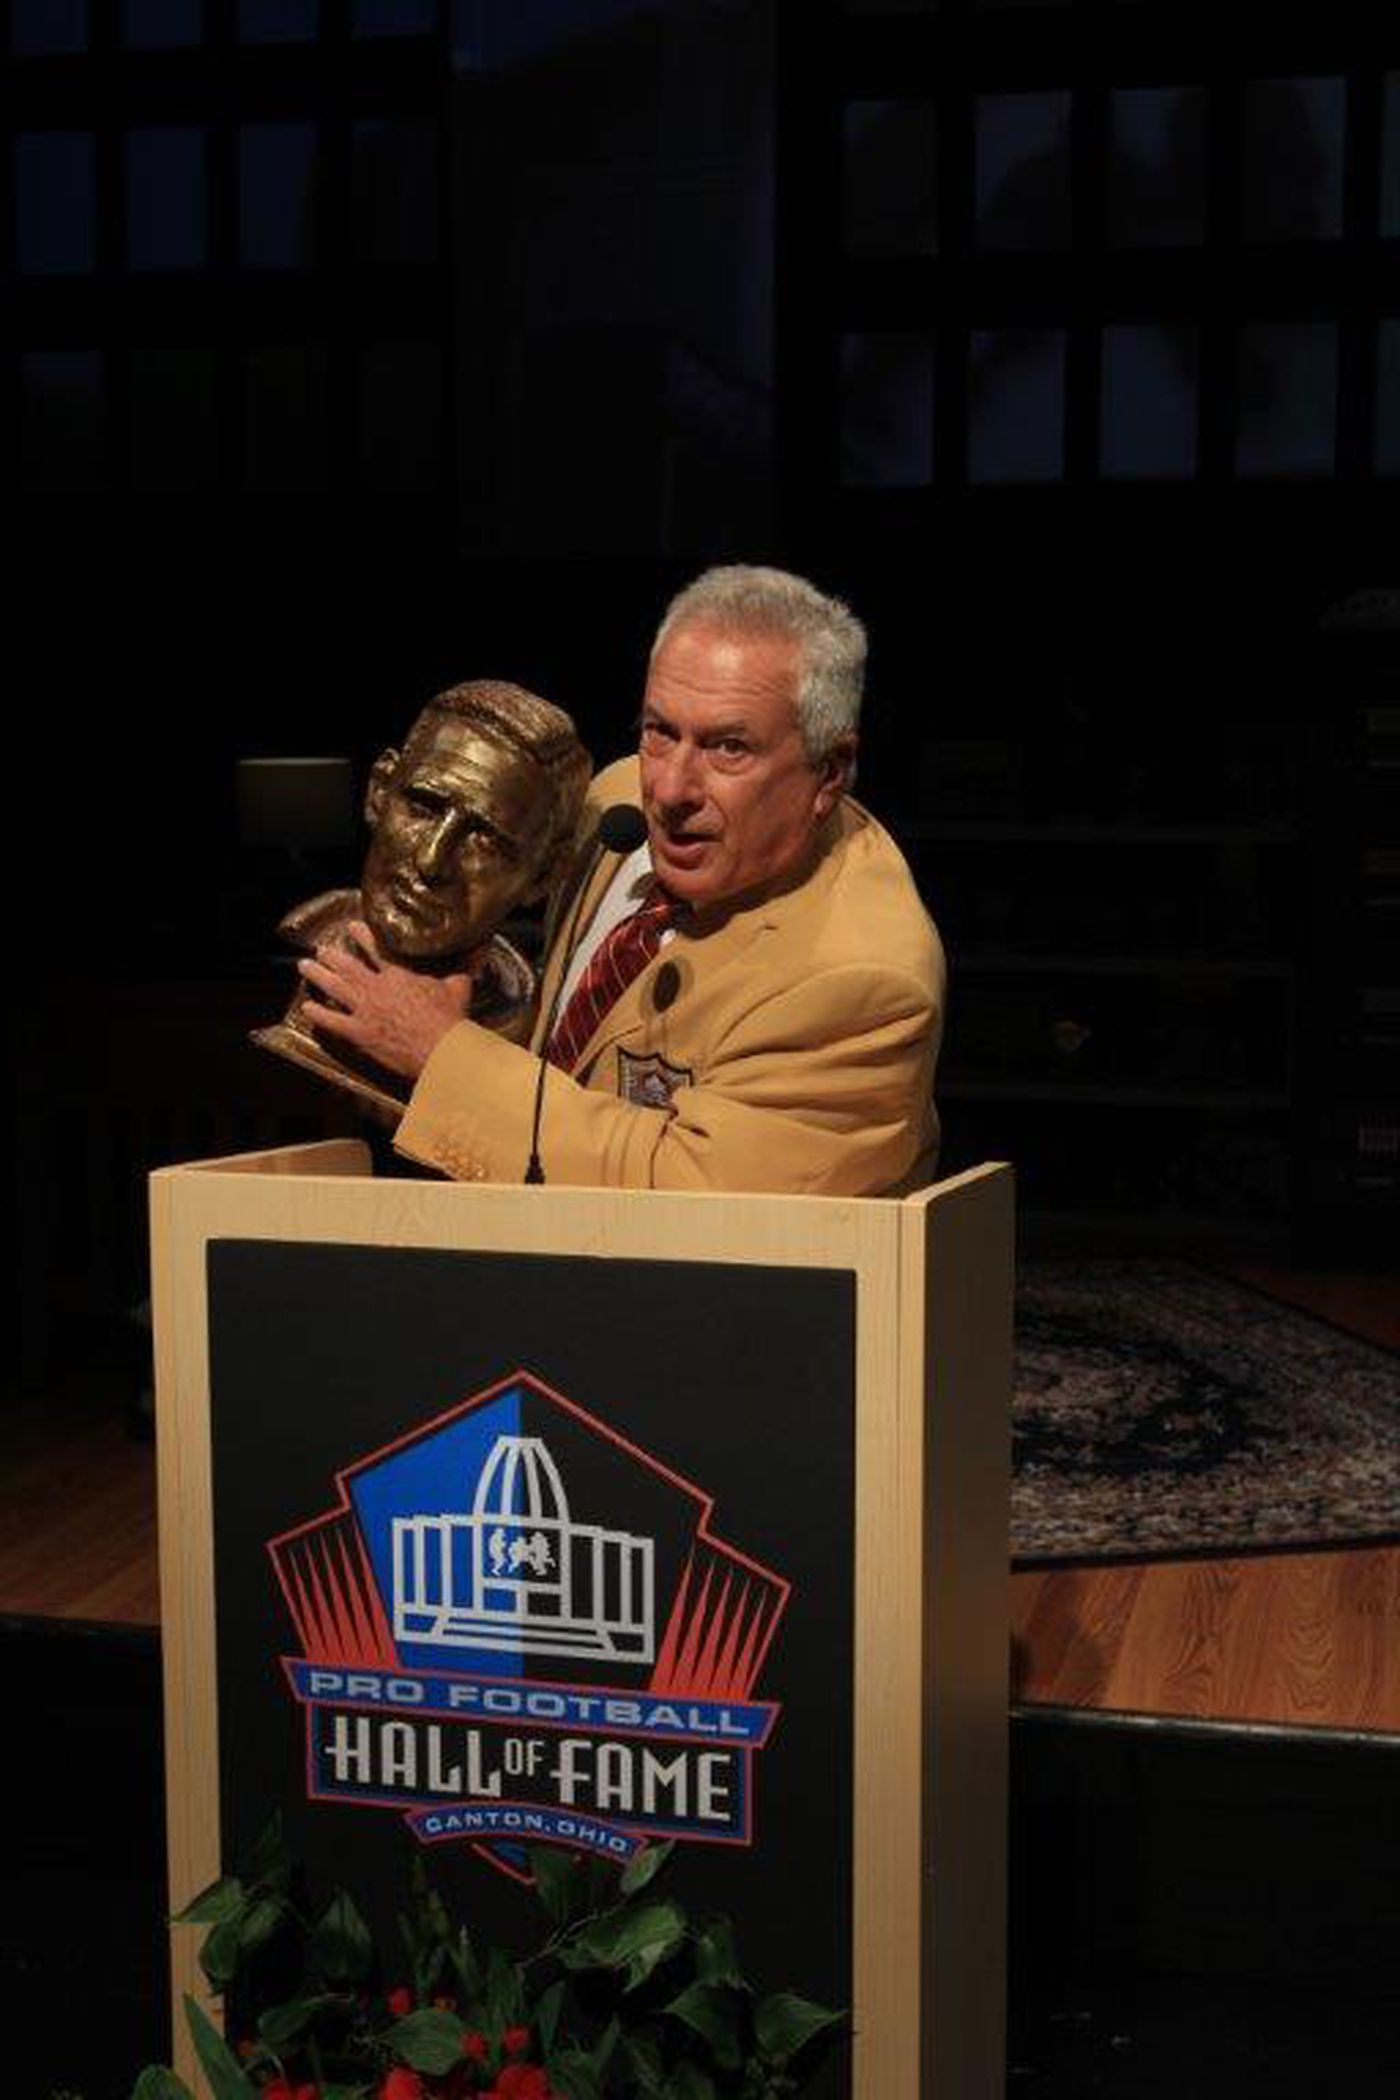 96f9c9c2a Tom Teti as Eagles wide receiver Tommy McDonald accepting his induction  into the pro football Hall of Fame in Ray Didinger s autobiographical play  Tommy and ...